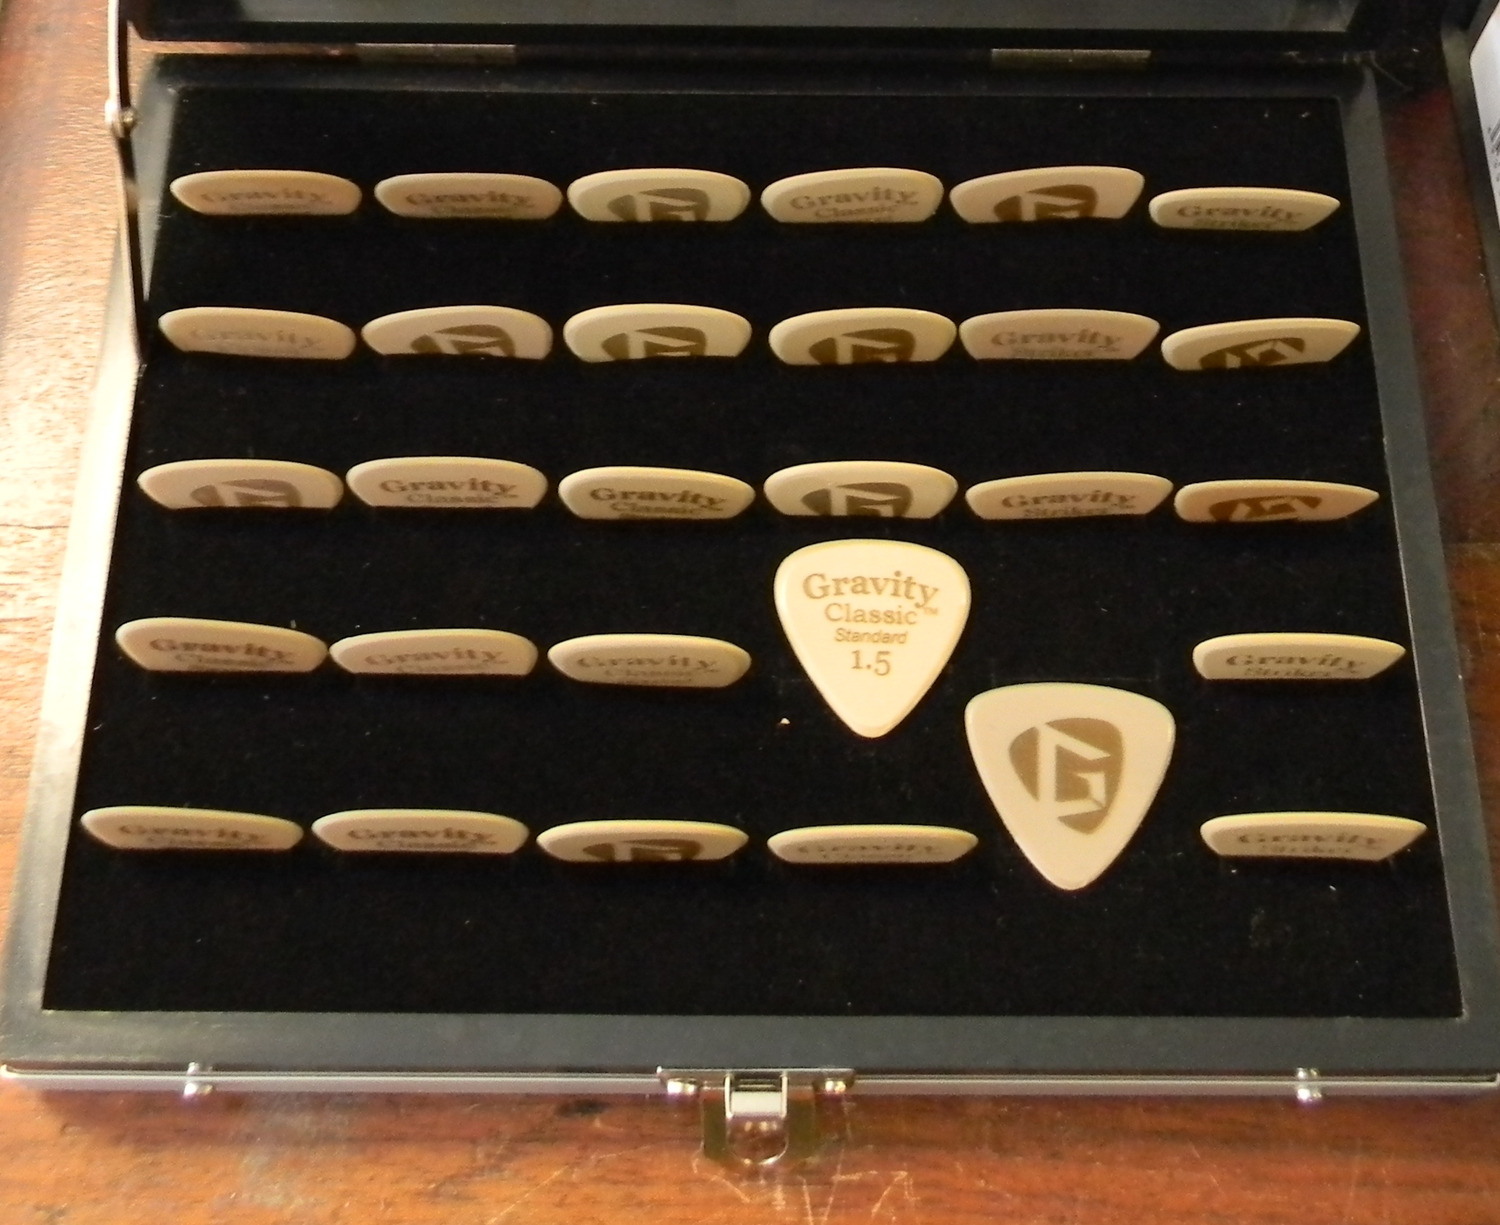 Gravity Gold Picks. The response to this $20 pick has been phenomenal. Not for everyone for sure, but many discriminating players have discovered added control, better tone, and more volume on your acoustic guitar.